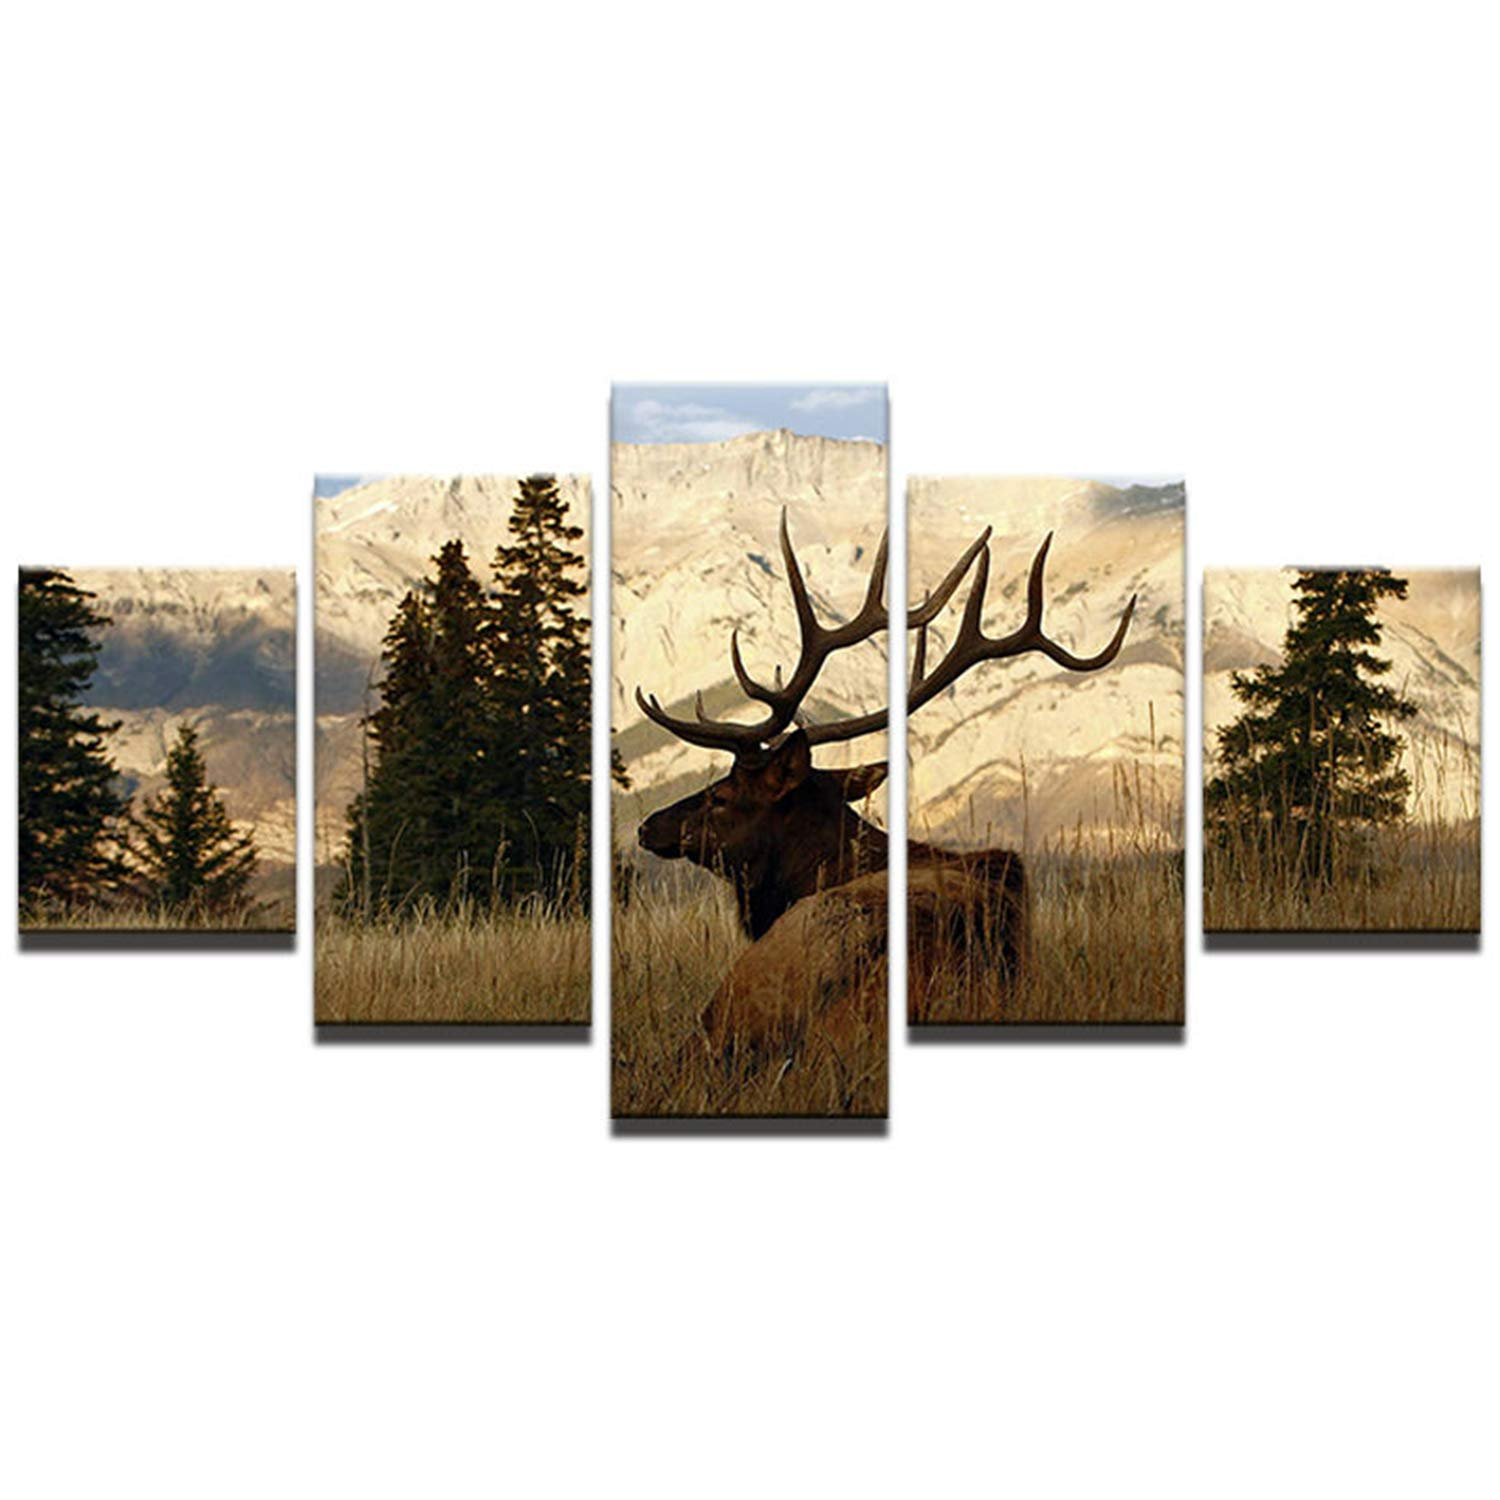 JESC Wall Art Printed Canvas Home Decor Living Room 5 Pieces Sunshine Mountain Trees Animal Deer Landscape Posters Painting Frame